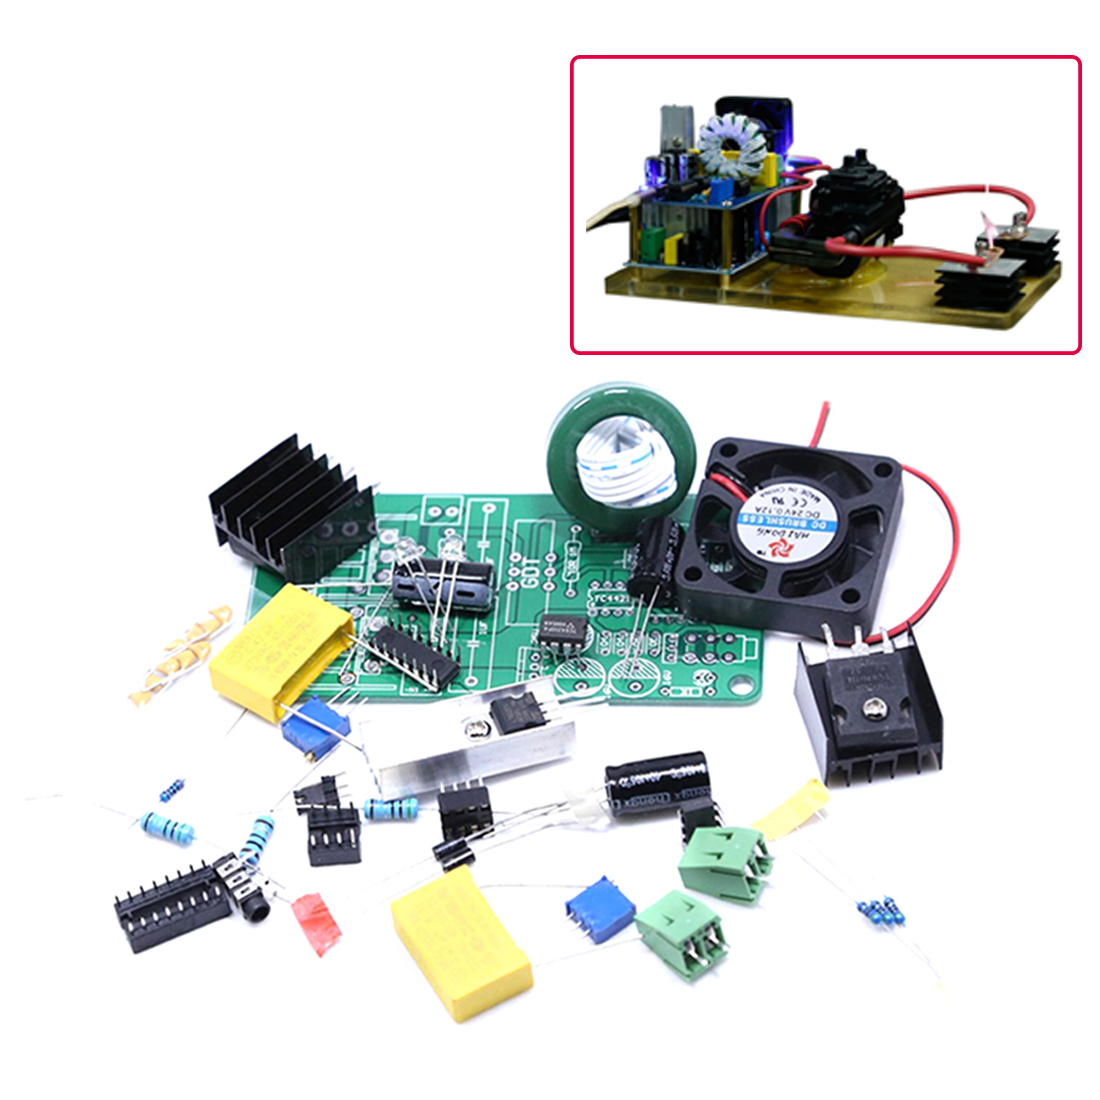 DIY Assembly Electronic Speaker Plasma Speaker Classic Tl494 Plasma Sound High Quality - A Full Set Of Parts / Finished